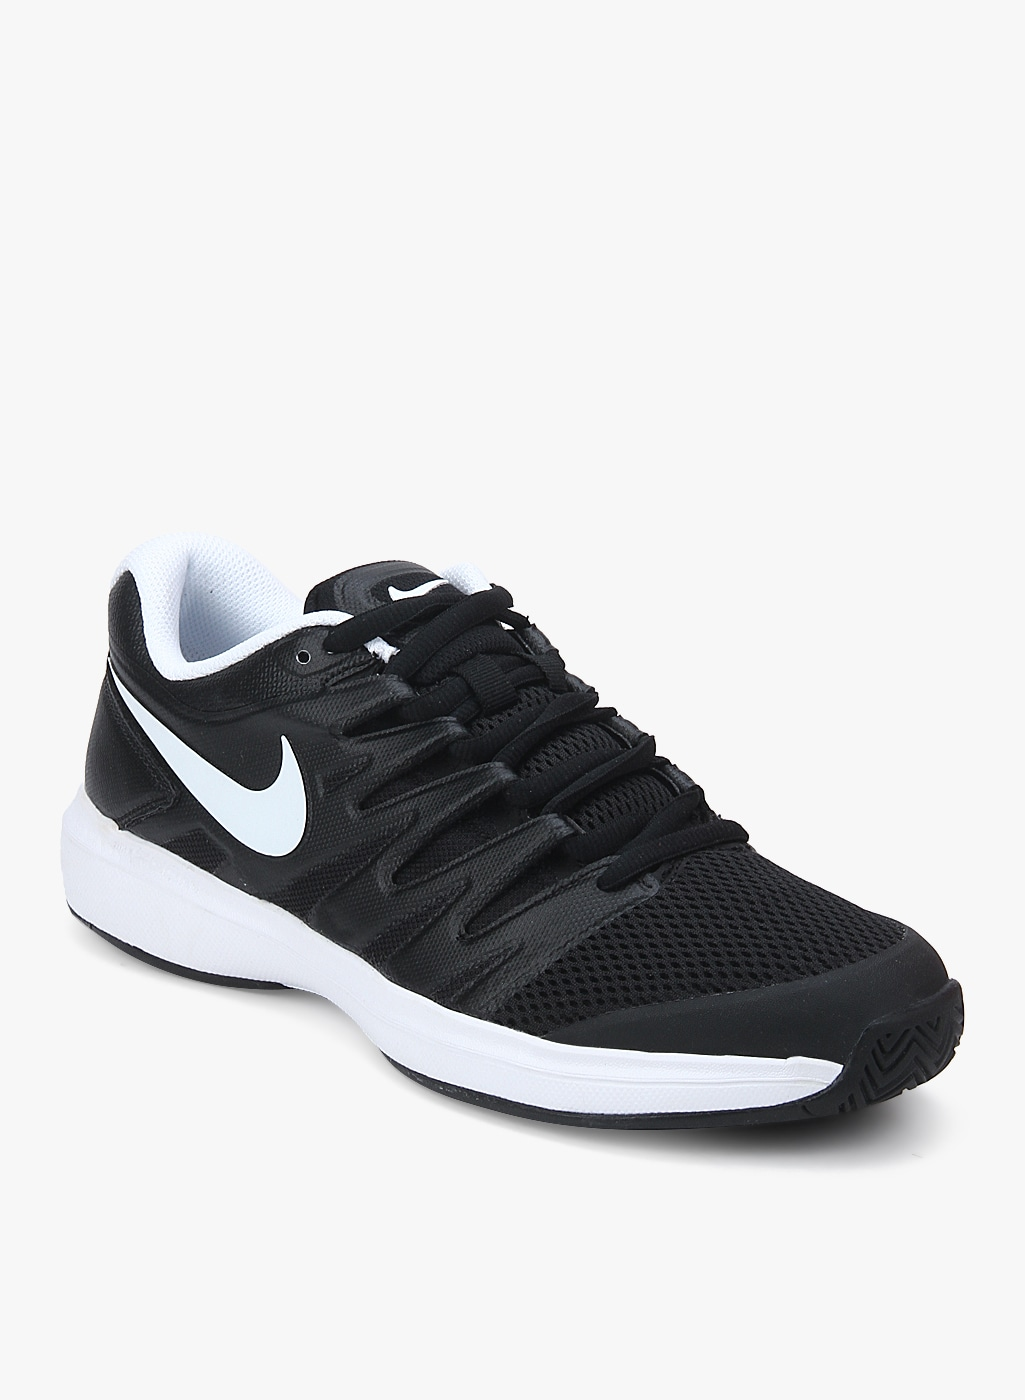 tennis shoes for men buy tennis shoes online in india